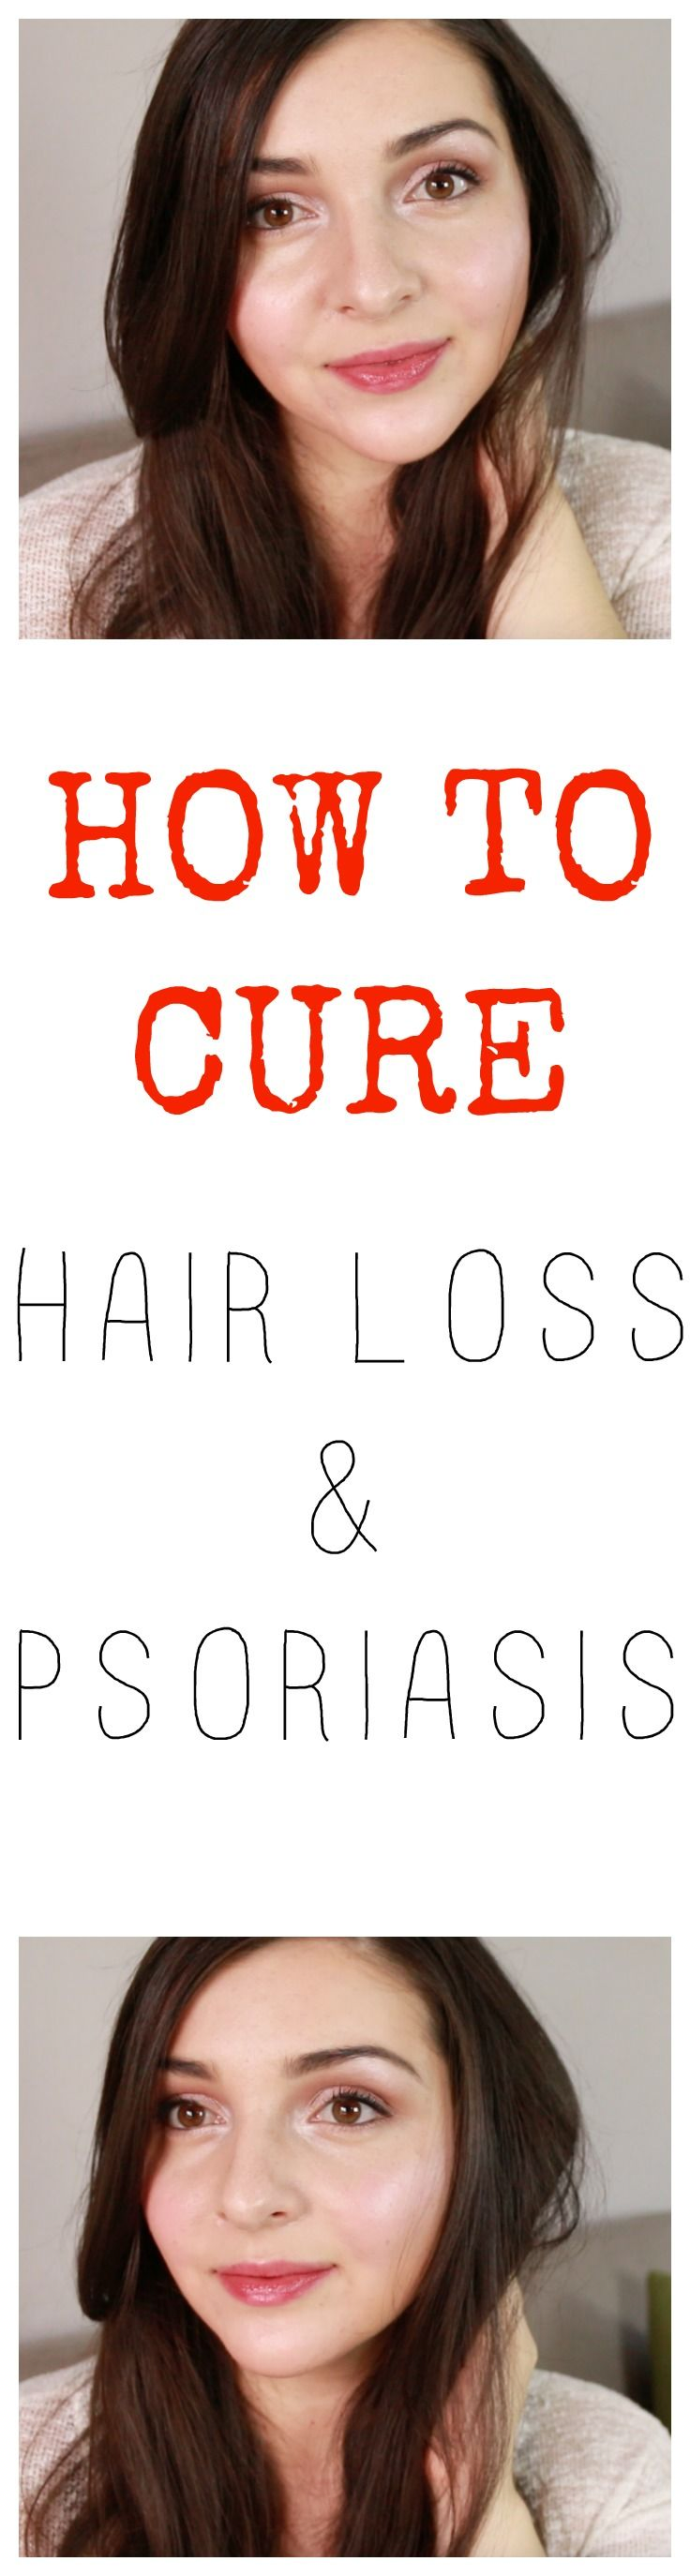 How to cure psoriasis, how to cure hair loss, how to heal psoriasis, dealing with psoriasis, healing hair loss, hair loss story, How I overcame my psoriasis and hair loss, Hair care routine, my natural hair care routine, natural hair care routine, natural treatment for psoriasis, products for psoriasis, shampoos for hair loss and psoriasis, healthy hair, how to get healthy scalp, healing balm for psoriasis, scalp massage, scalp oil massage, green beauty, green beauty blogger, natural beauty…